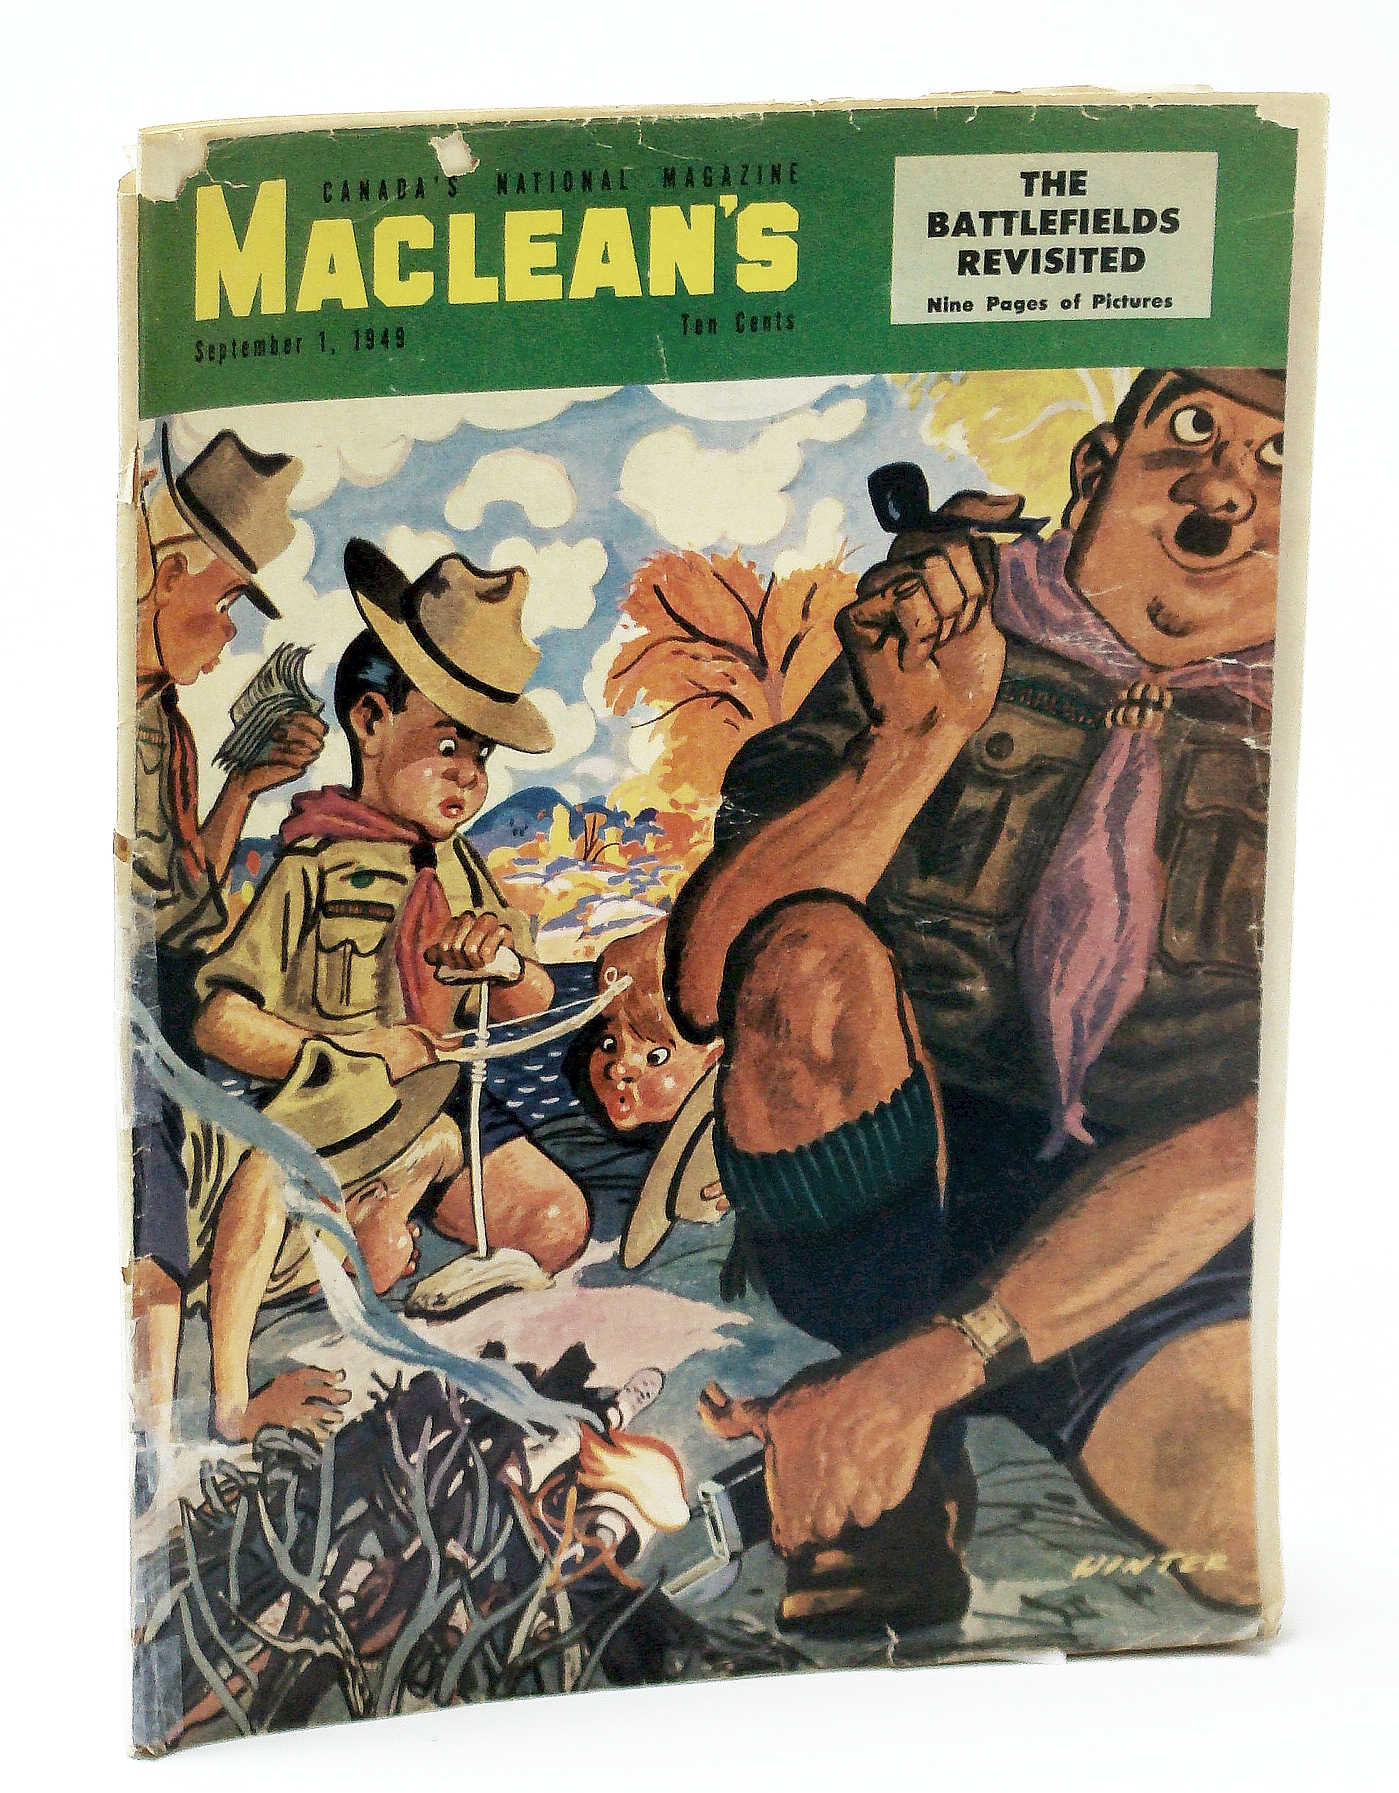 Image for Maclean's, Canada's National Magazine, September (Sept.) 1, 1949 - How They Solved the Northern Lights Mystery / George Young, Yesterday's Hero